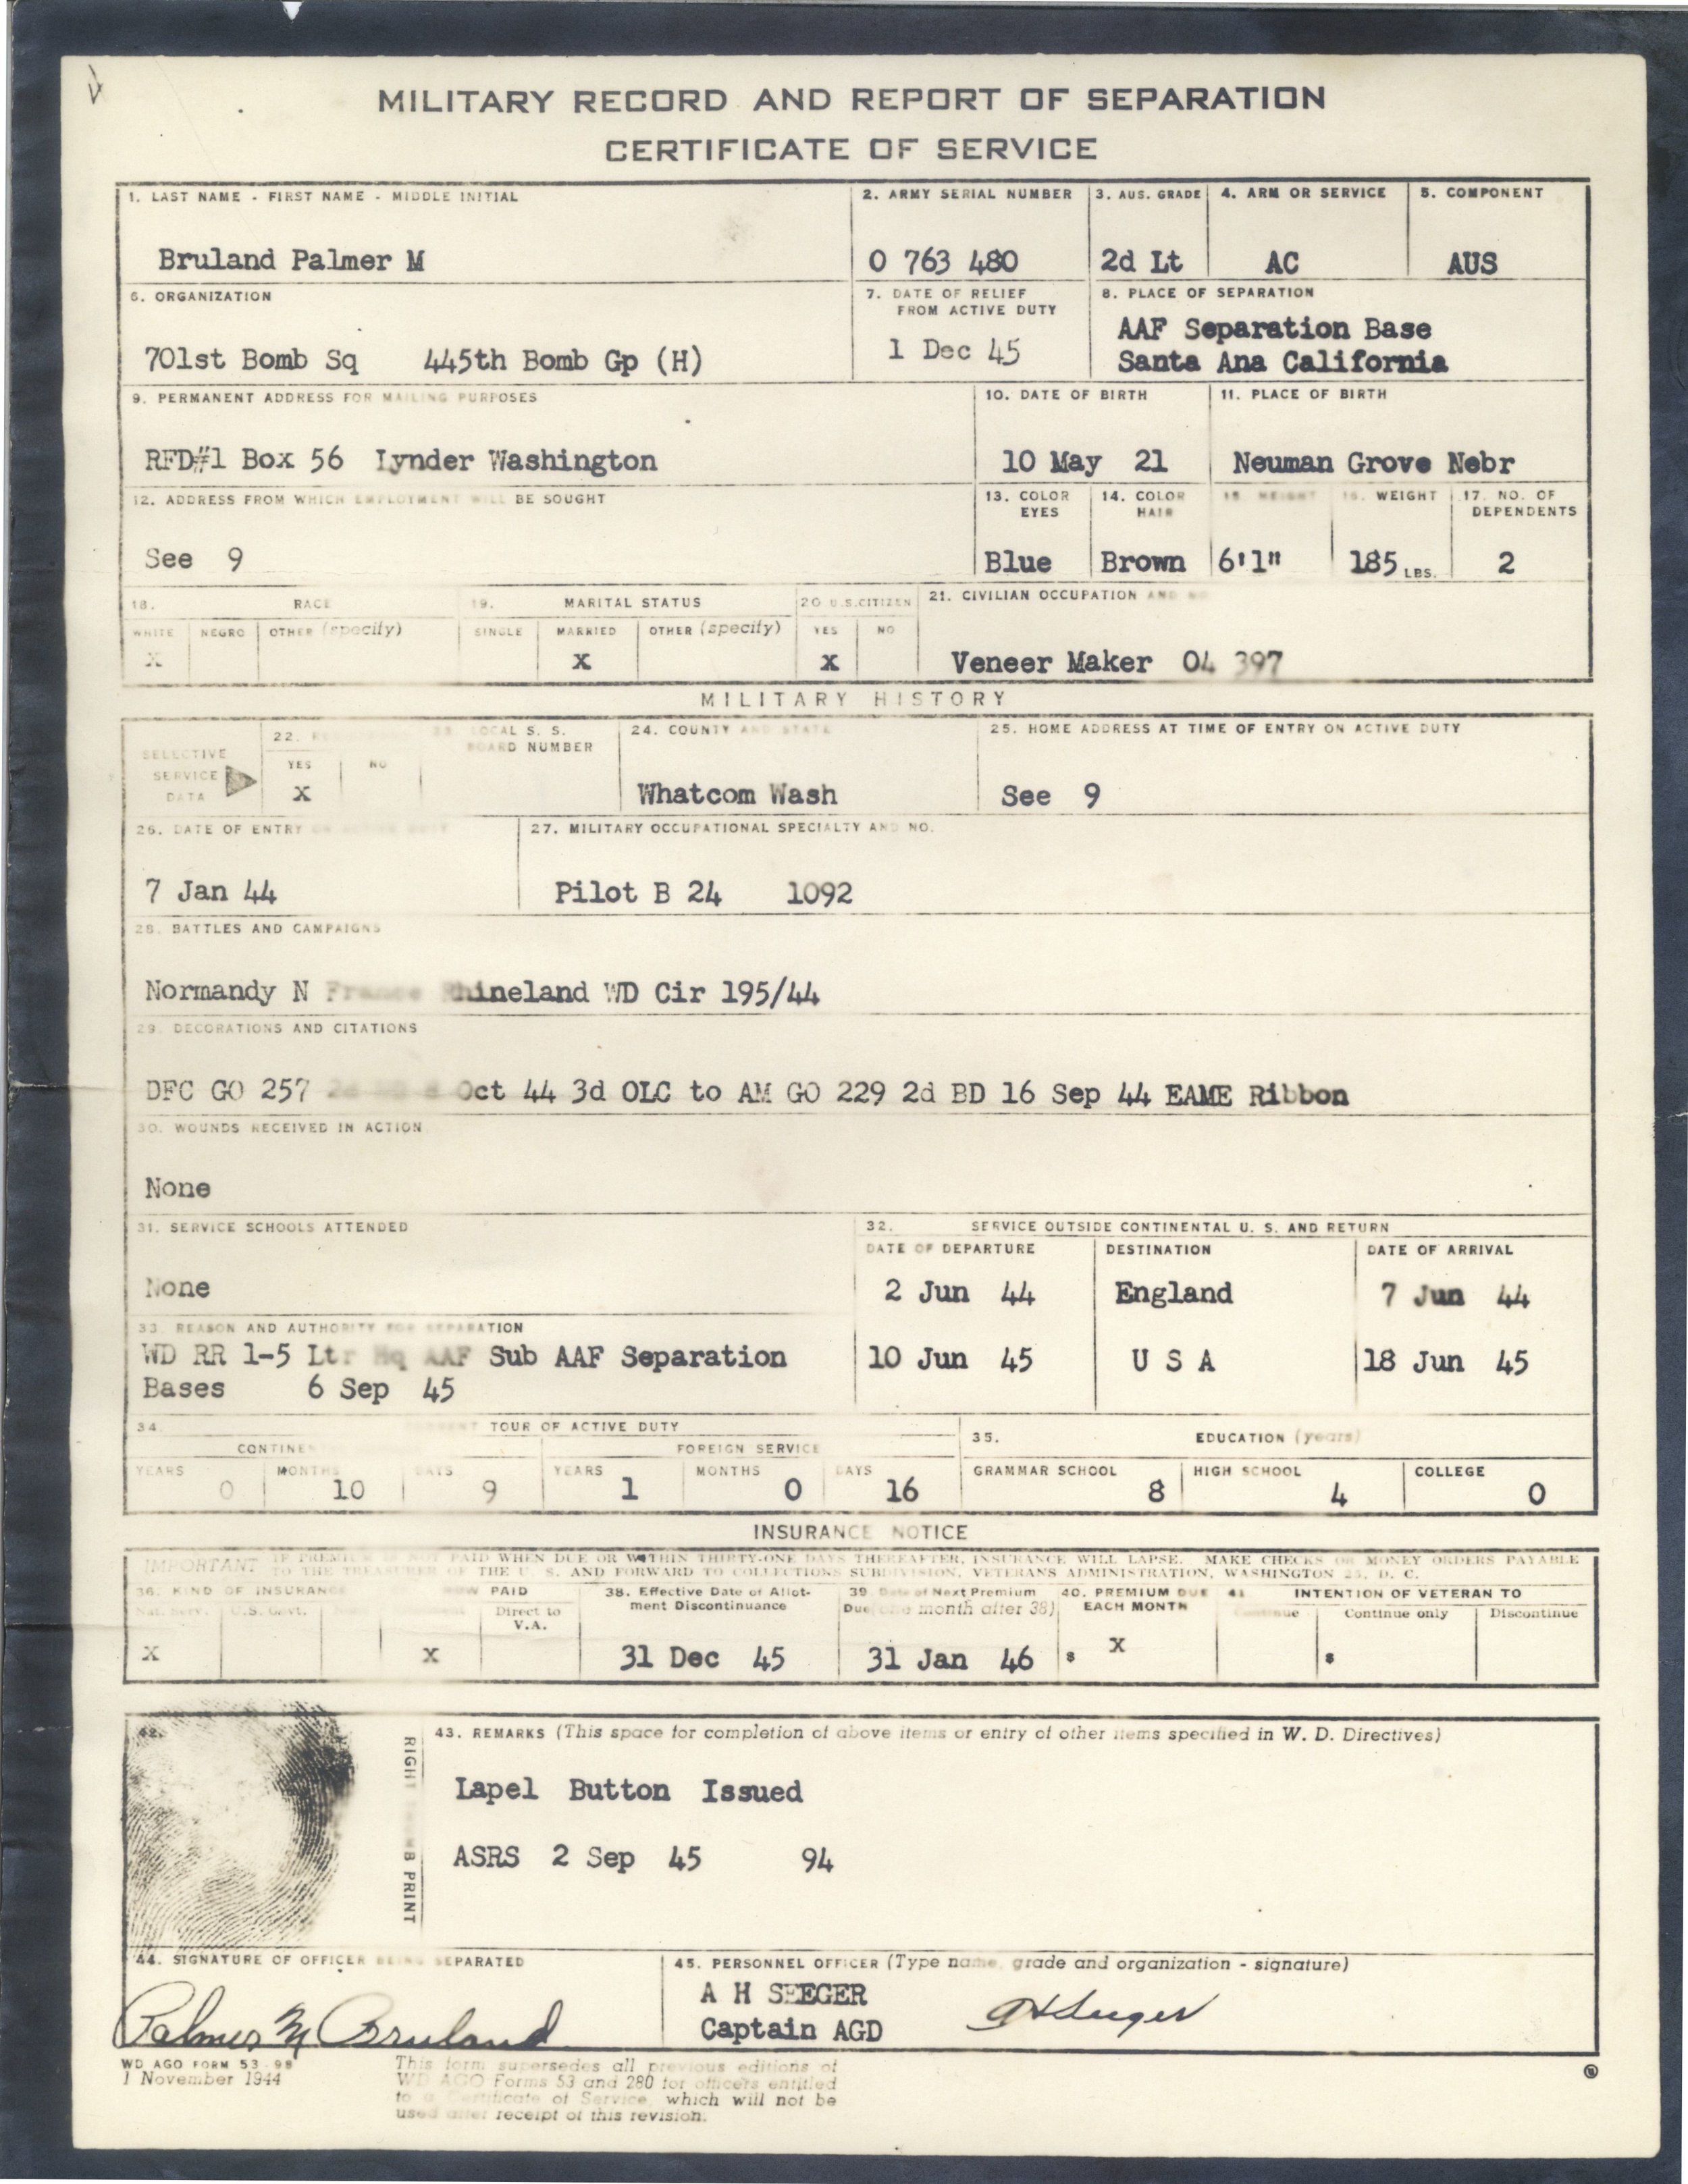 Bruland discharge papers